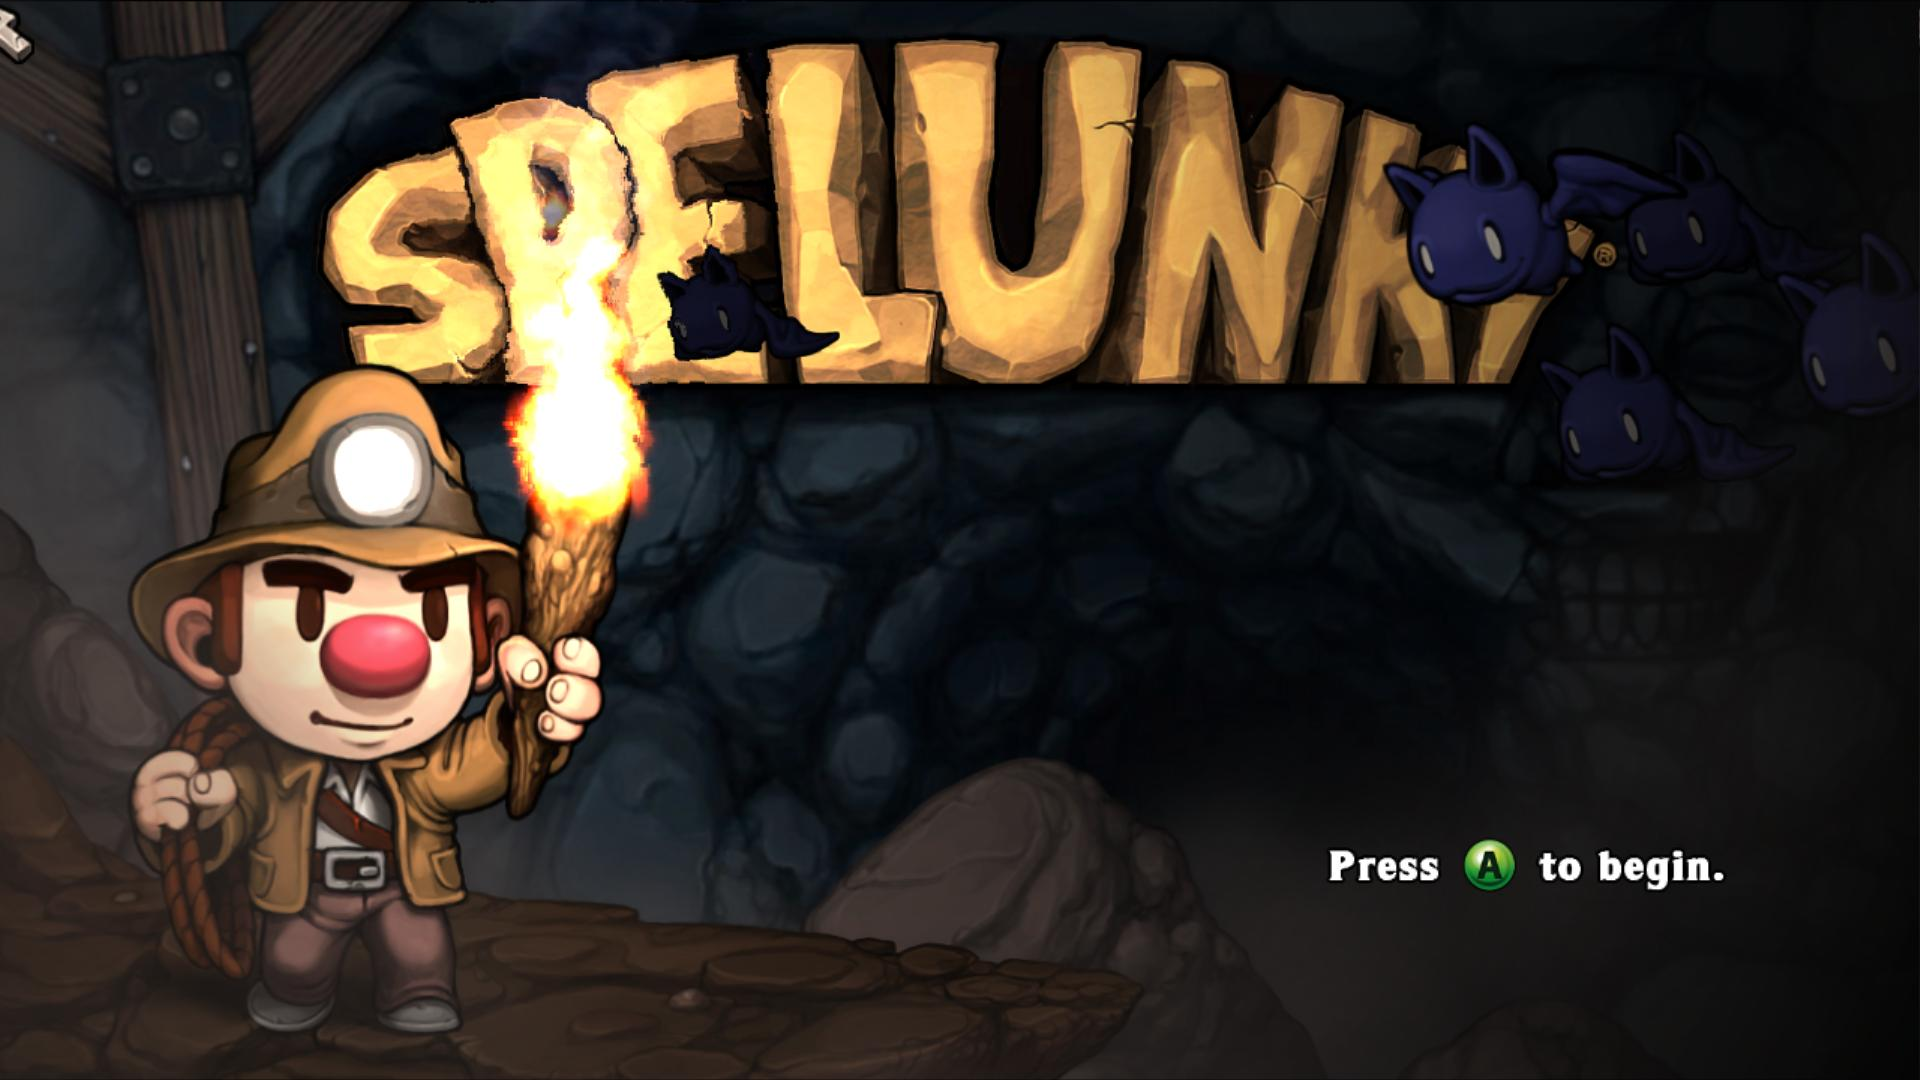 Spelunky Reflex Review: Loving Torture